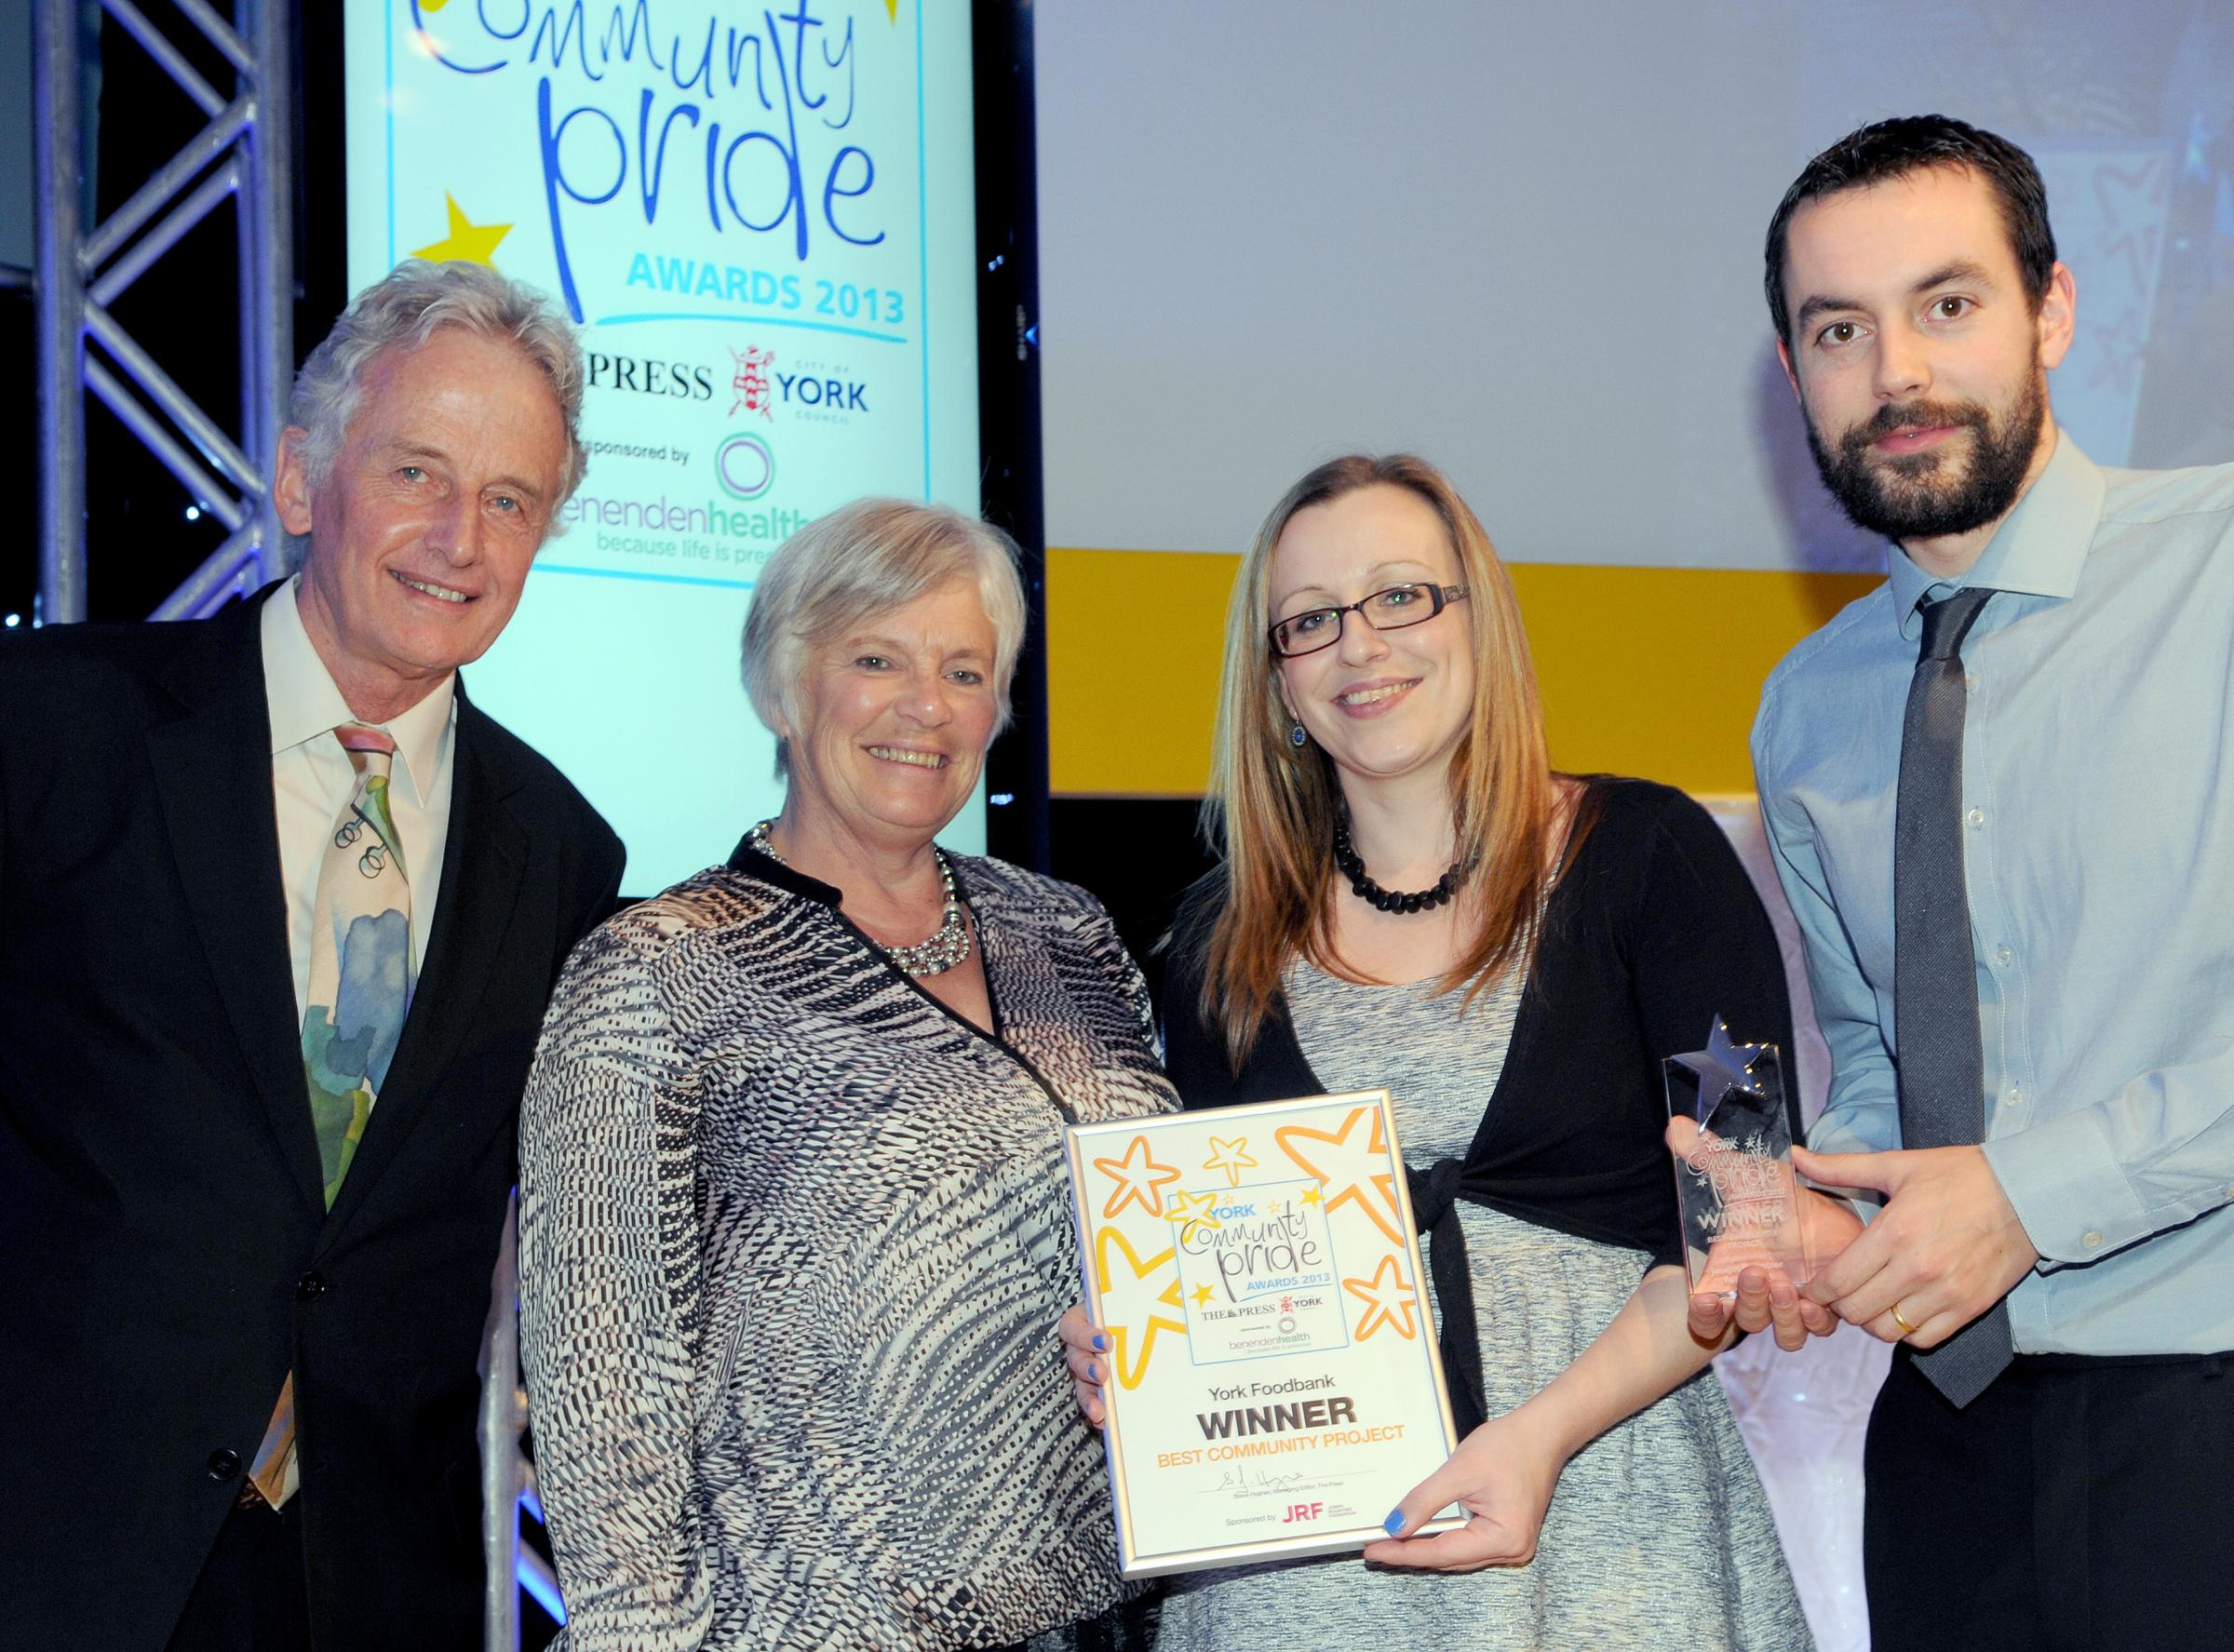 John Low (left) of the Joseph Rowntree Foundation with members of York Foodbank (from left) Helen Dunville, Tess Sherratt and Caleb Ellwood, winners of the Best Community Project in 2013 at last year's awards ceremony.